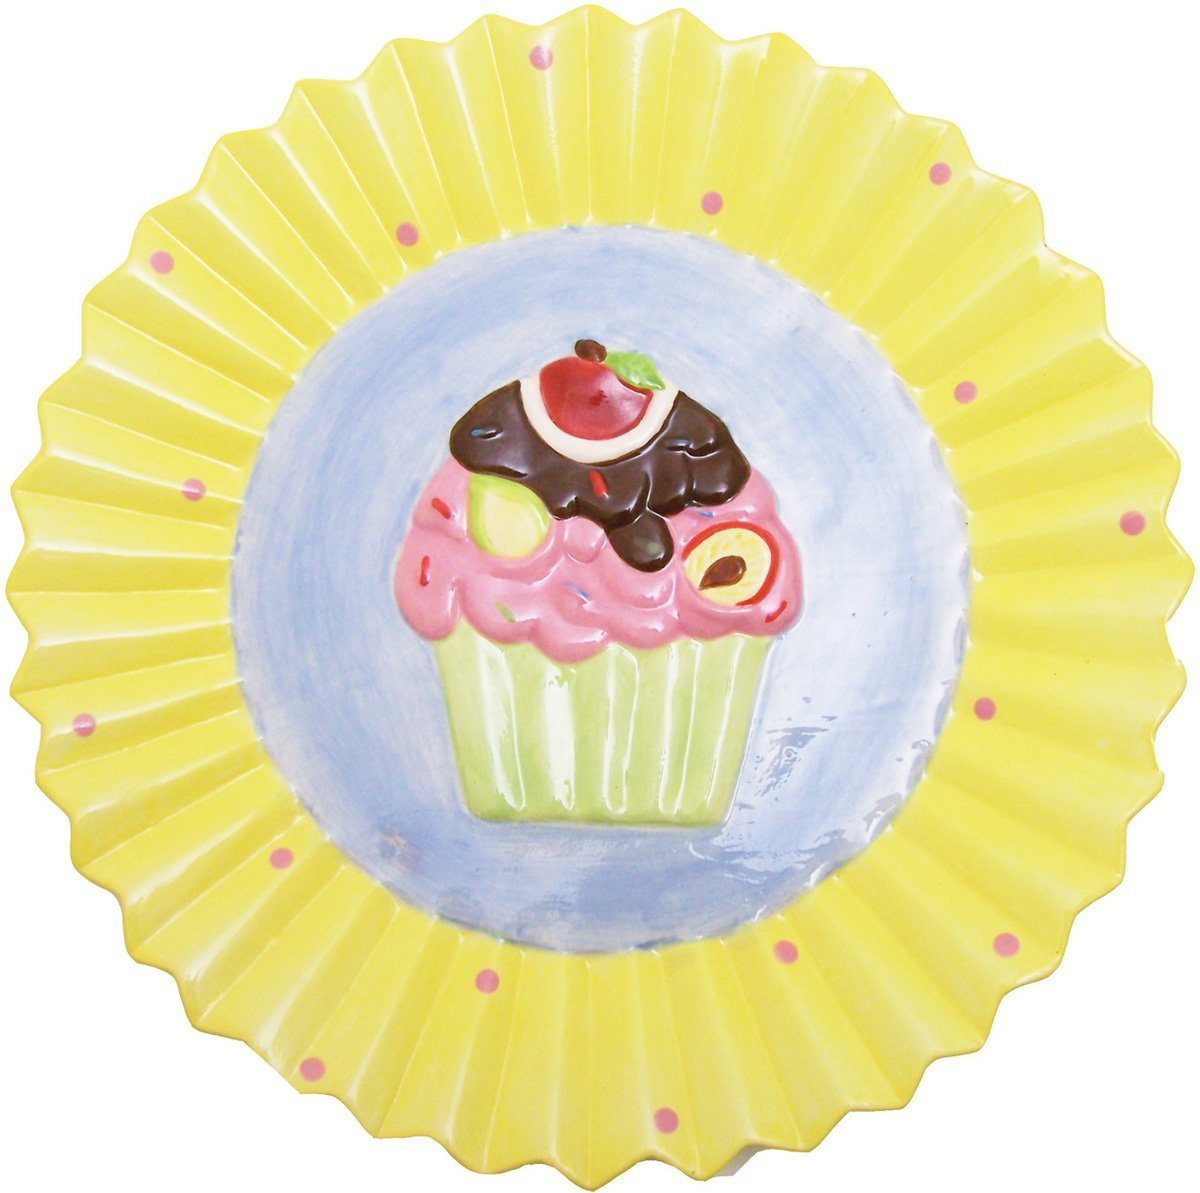 Sassafras Cupcake Dessert Plates: Kitchenware (Set of 4)